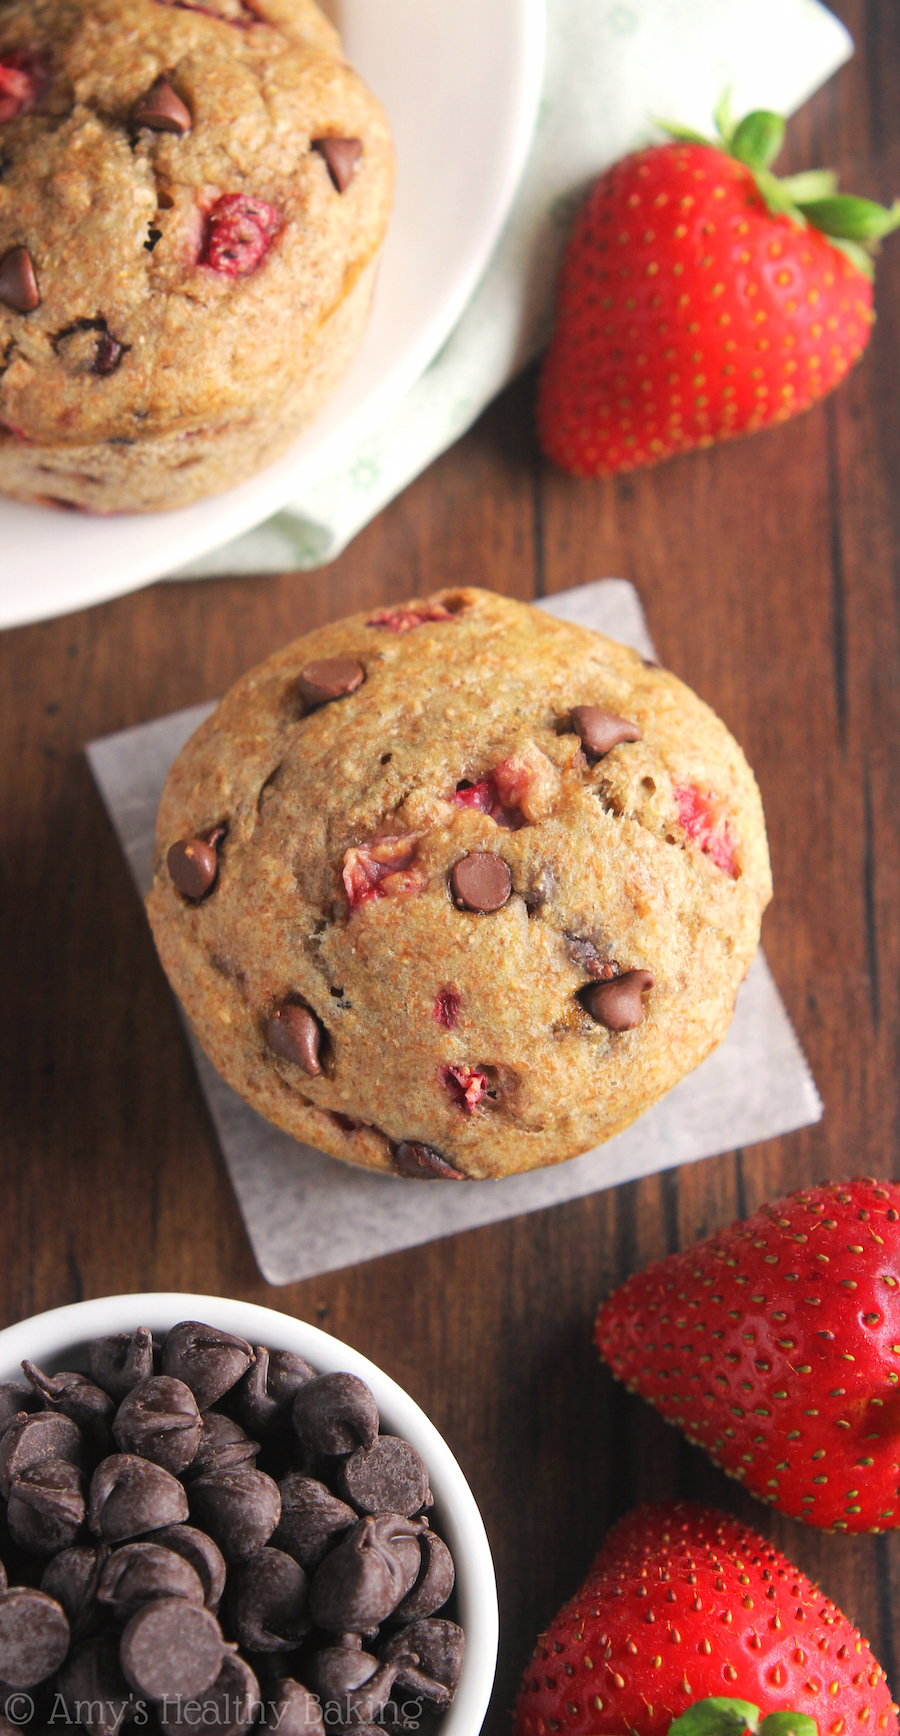 Clean-Eating Chocolate Chip Strawberry Banana Muffins -- this healthy recipe has the same texture cupcakes! Just 134 calories & packed with 3 superfoods!